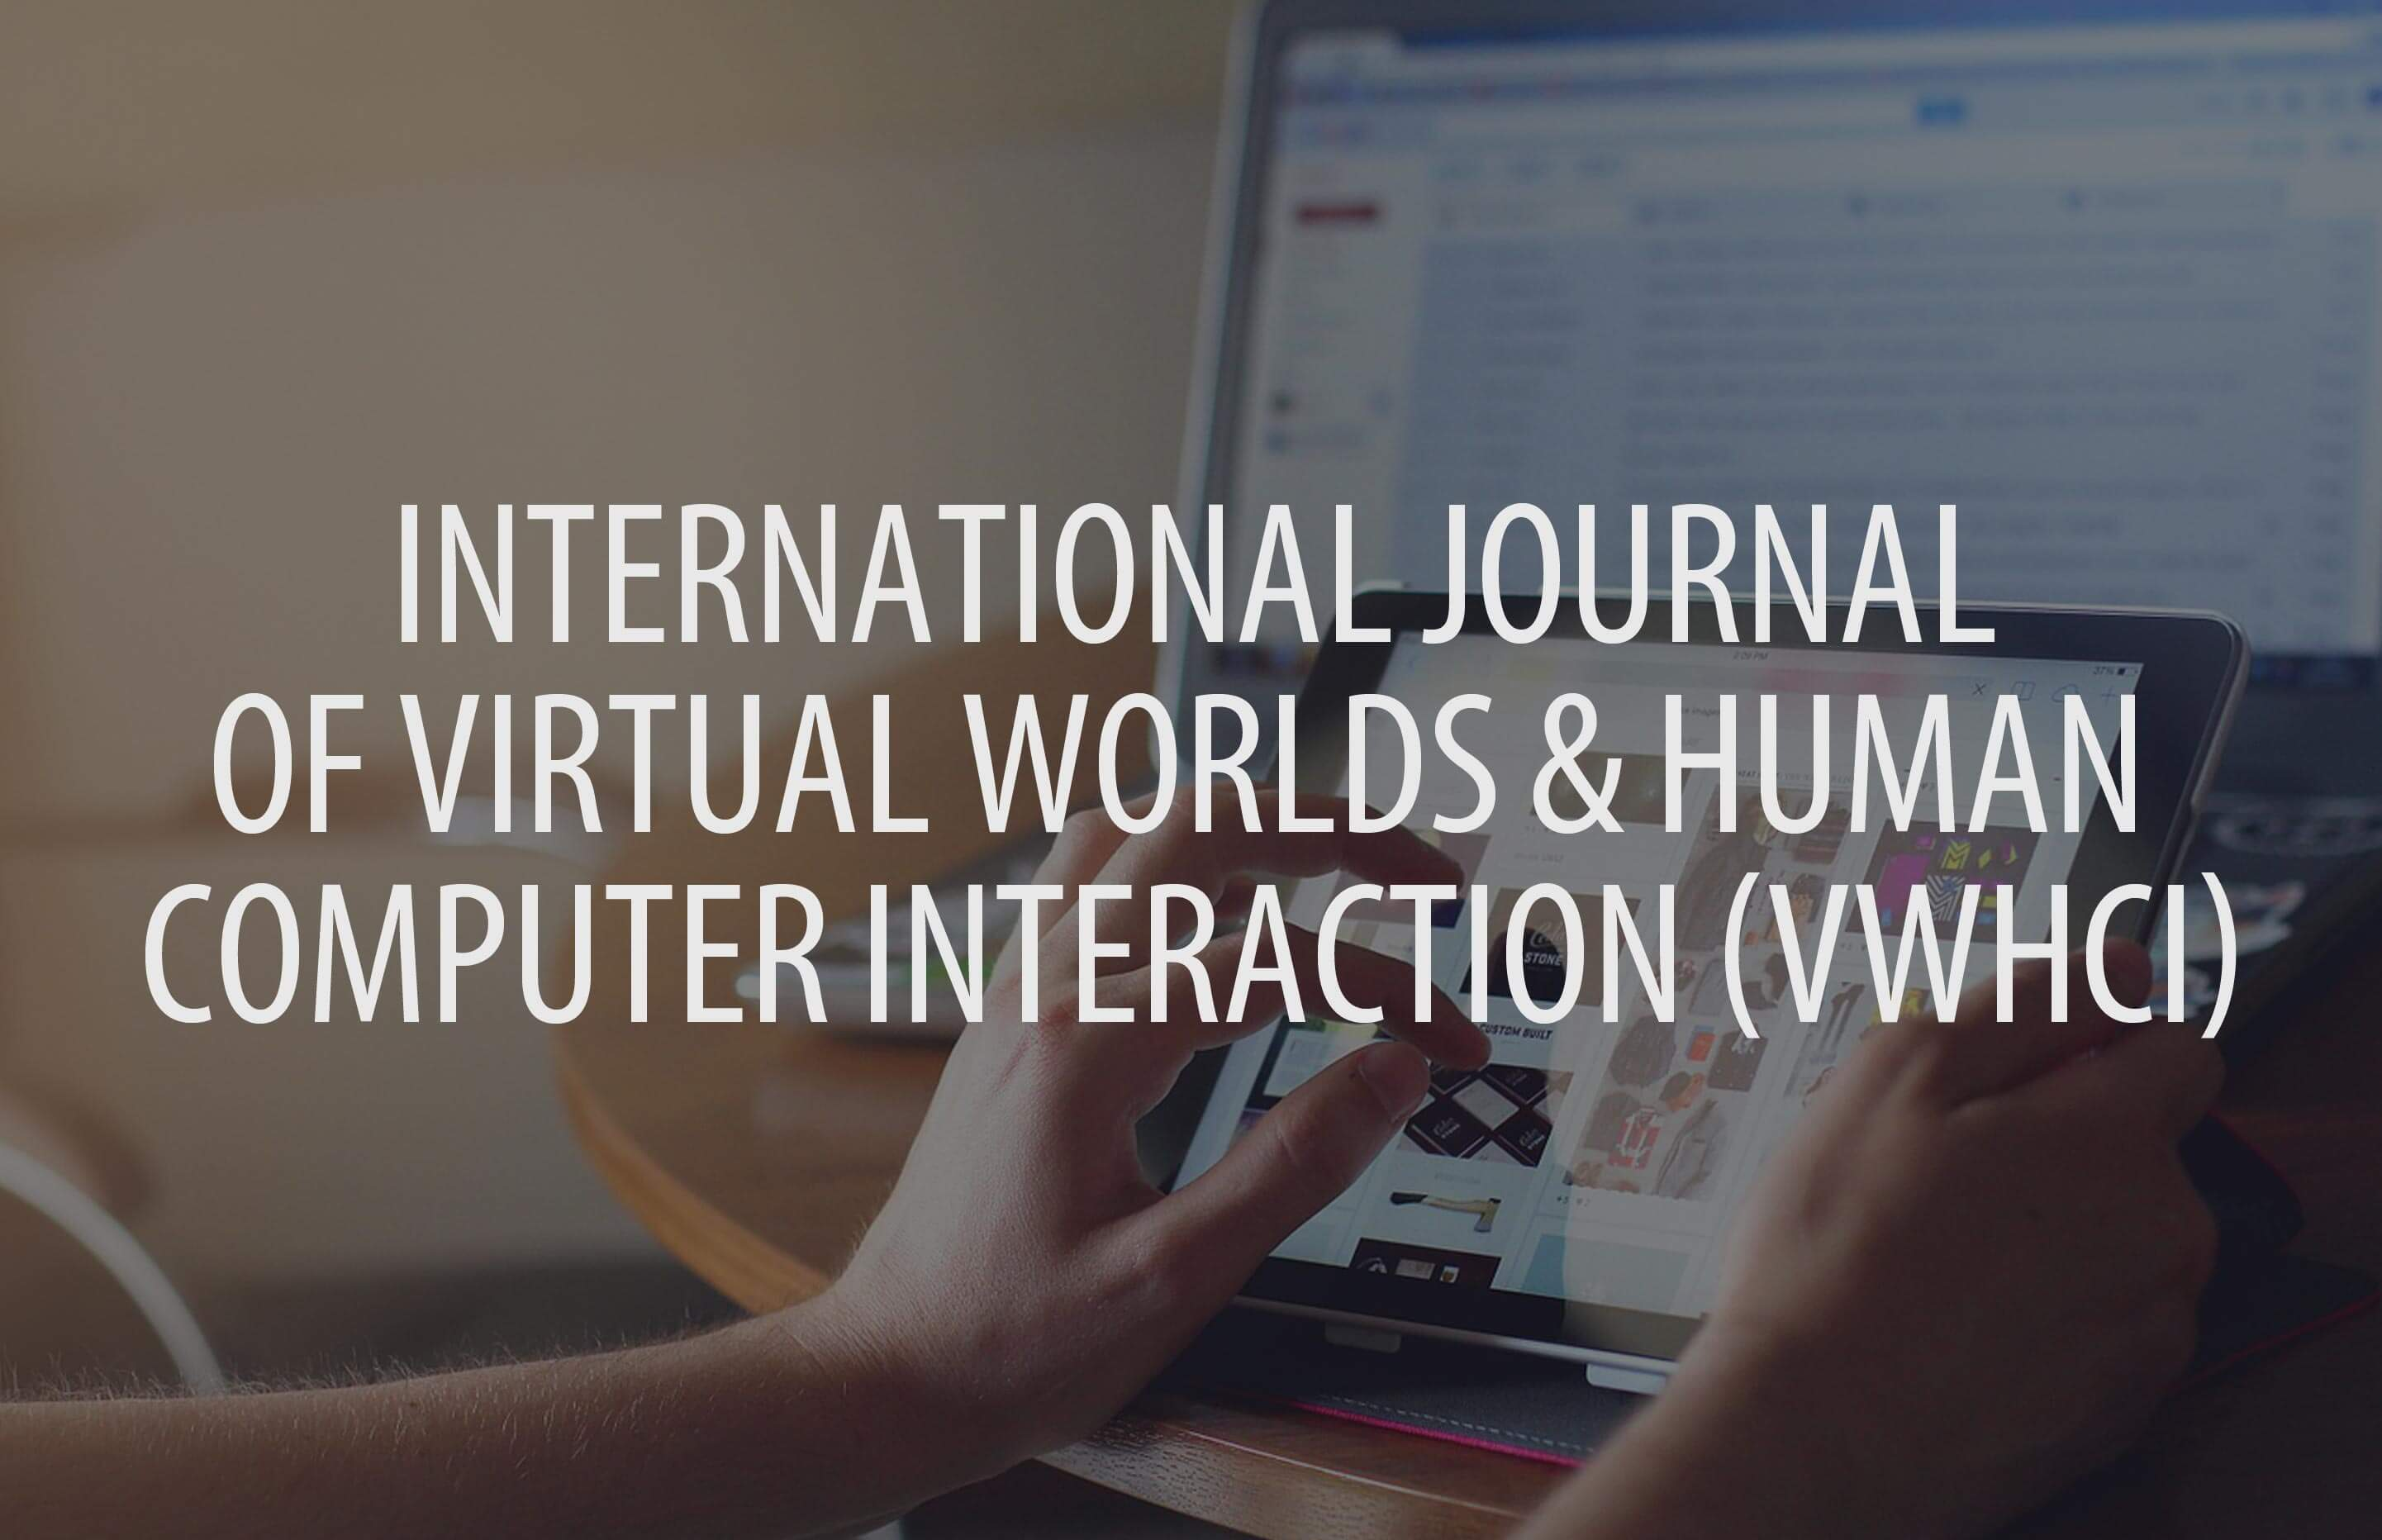 International Journal of Virtual Worlds and Human Computer Interaction (VWHCI)